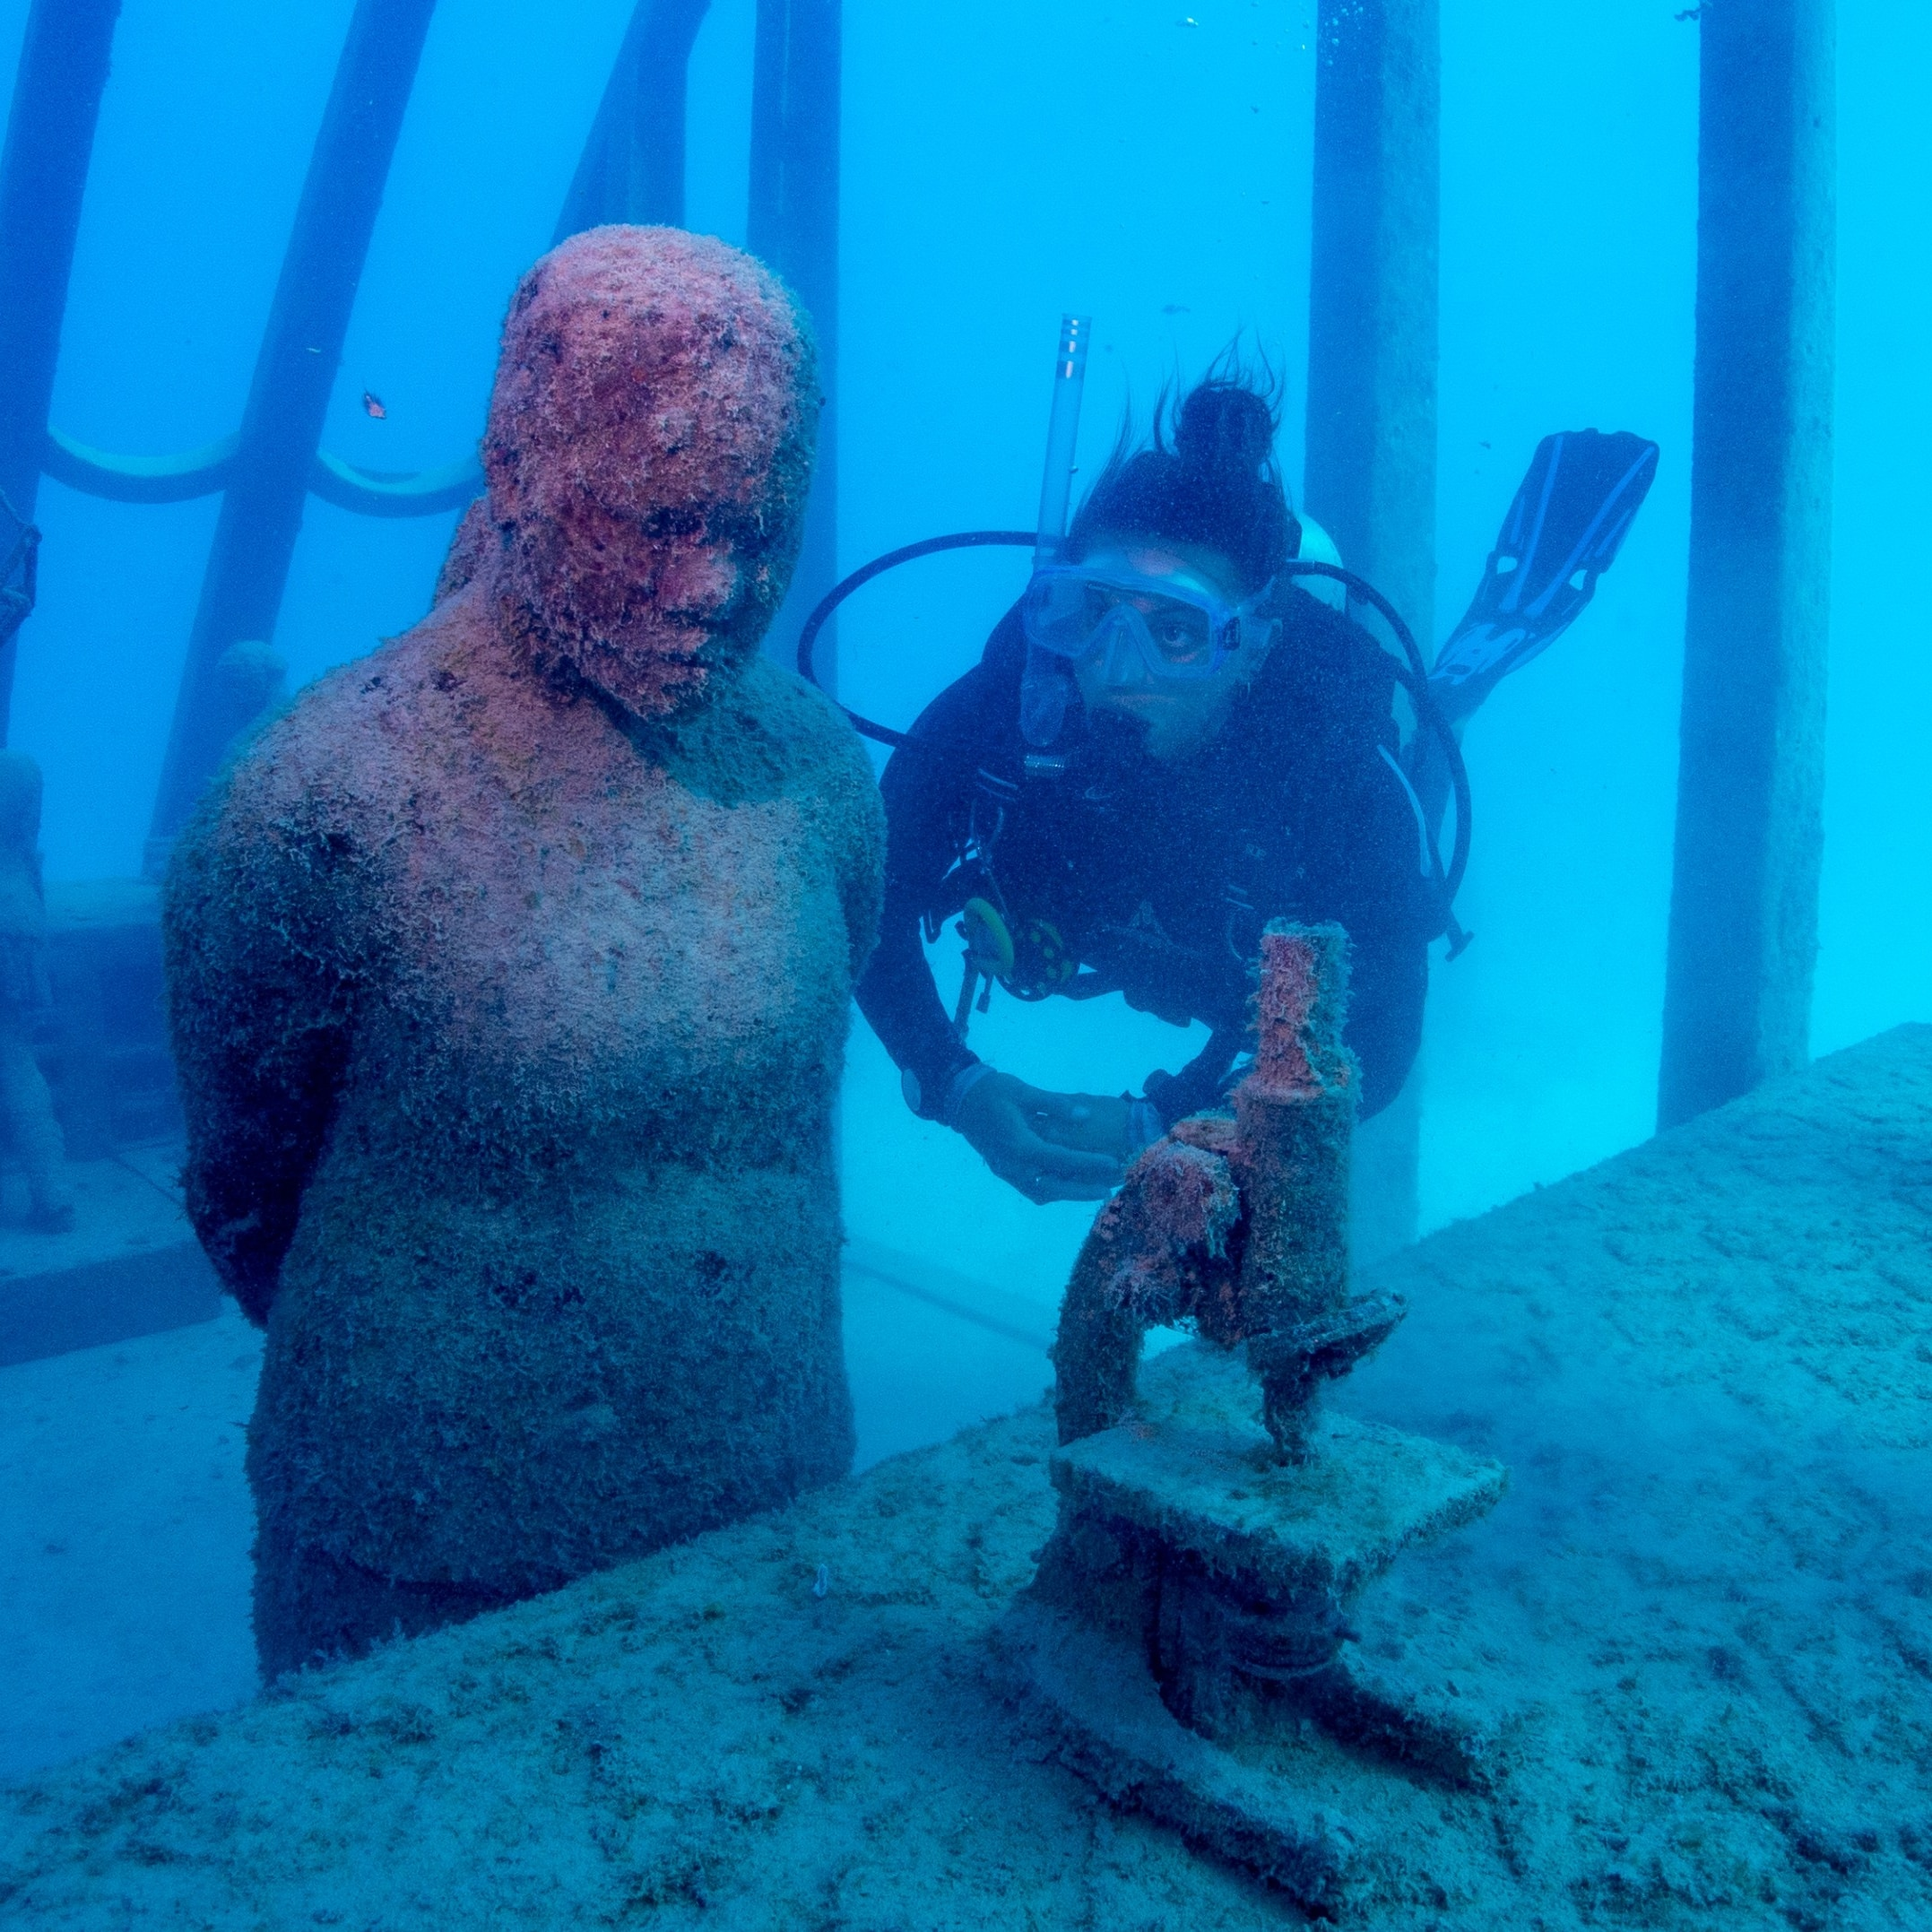 Scuba diver swims next to a statue inside the Coral Greenhouse at the Museum of Underwater Art © Gemma Molinaro Photographer